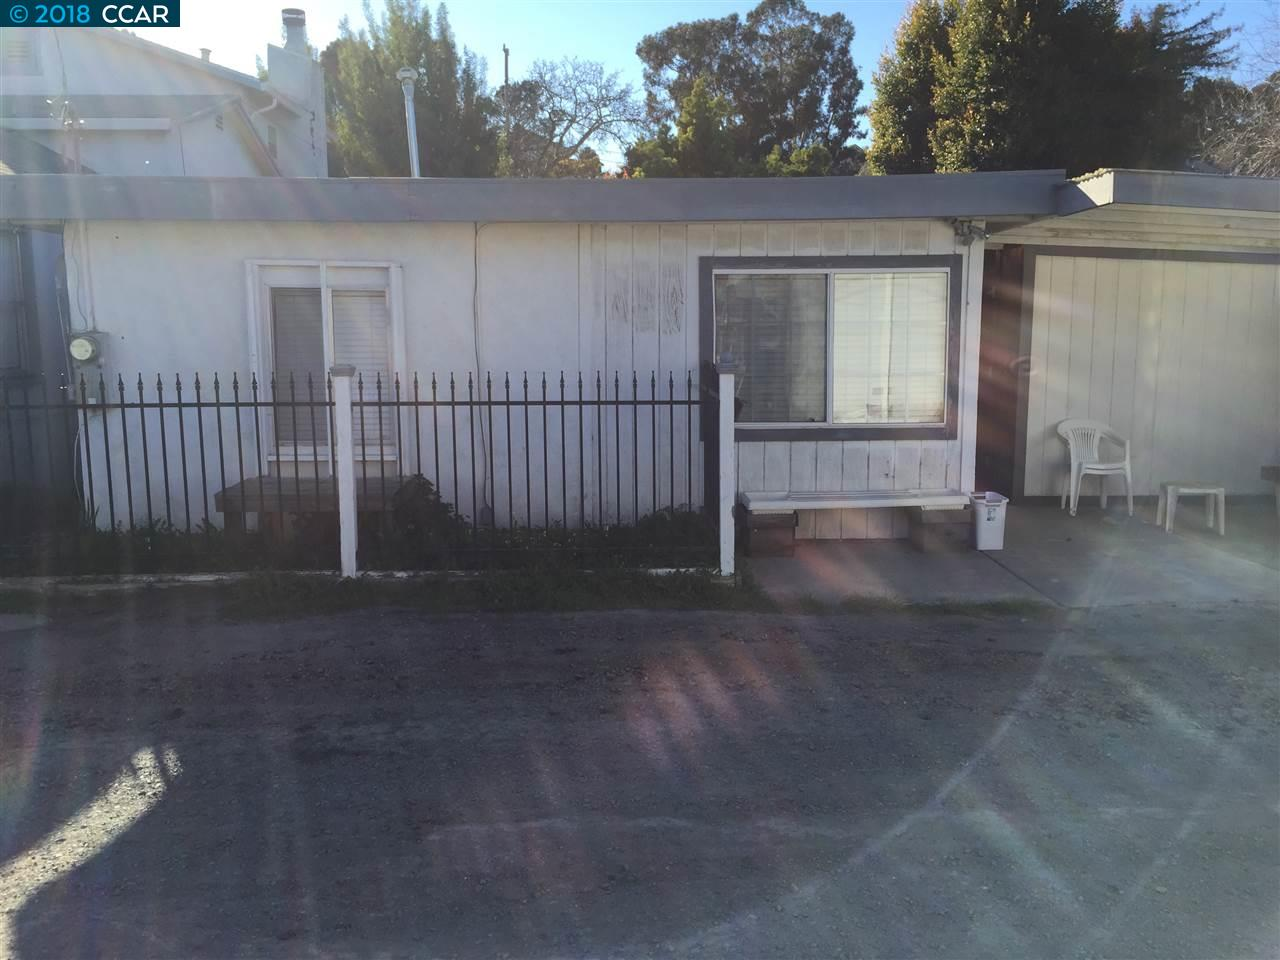 635 RODEO AVE, RODEO, CA 94572